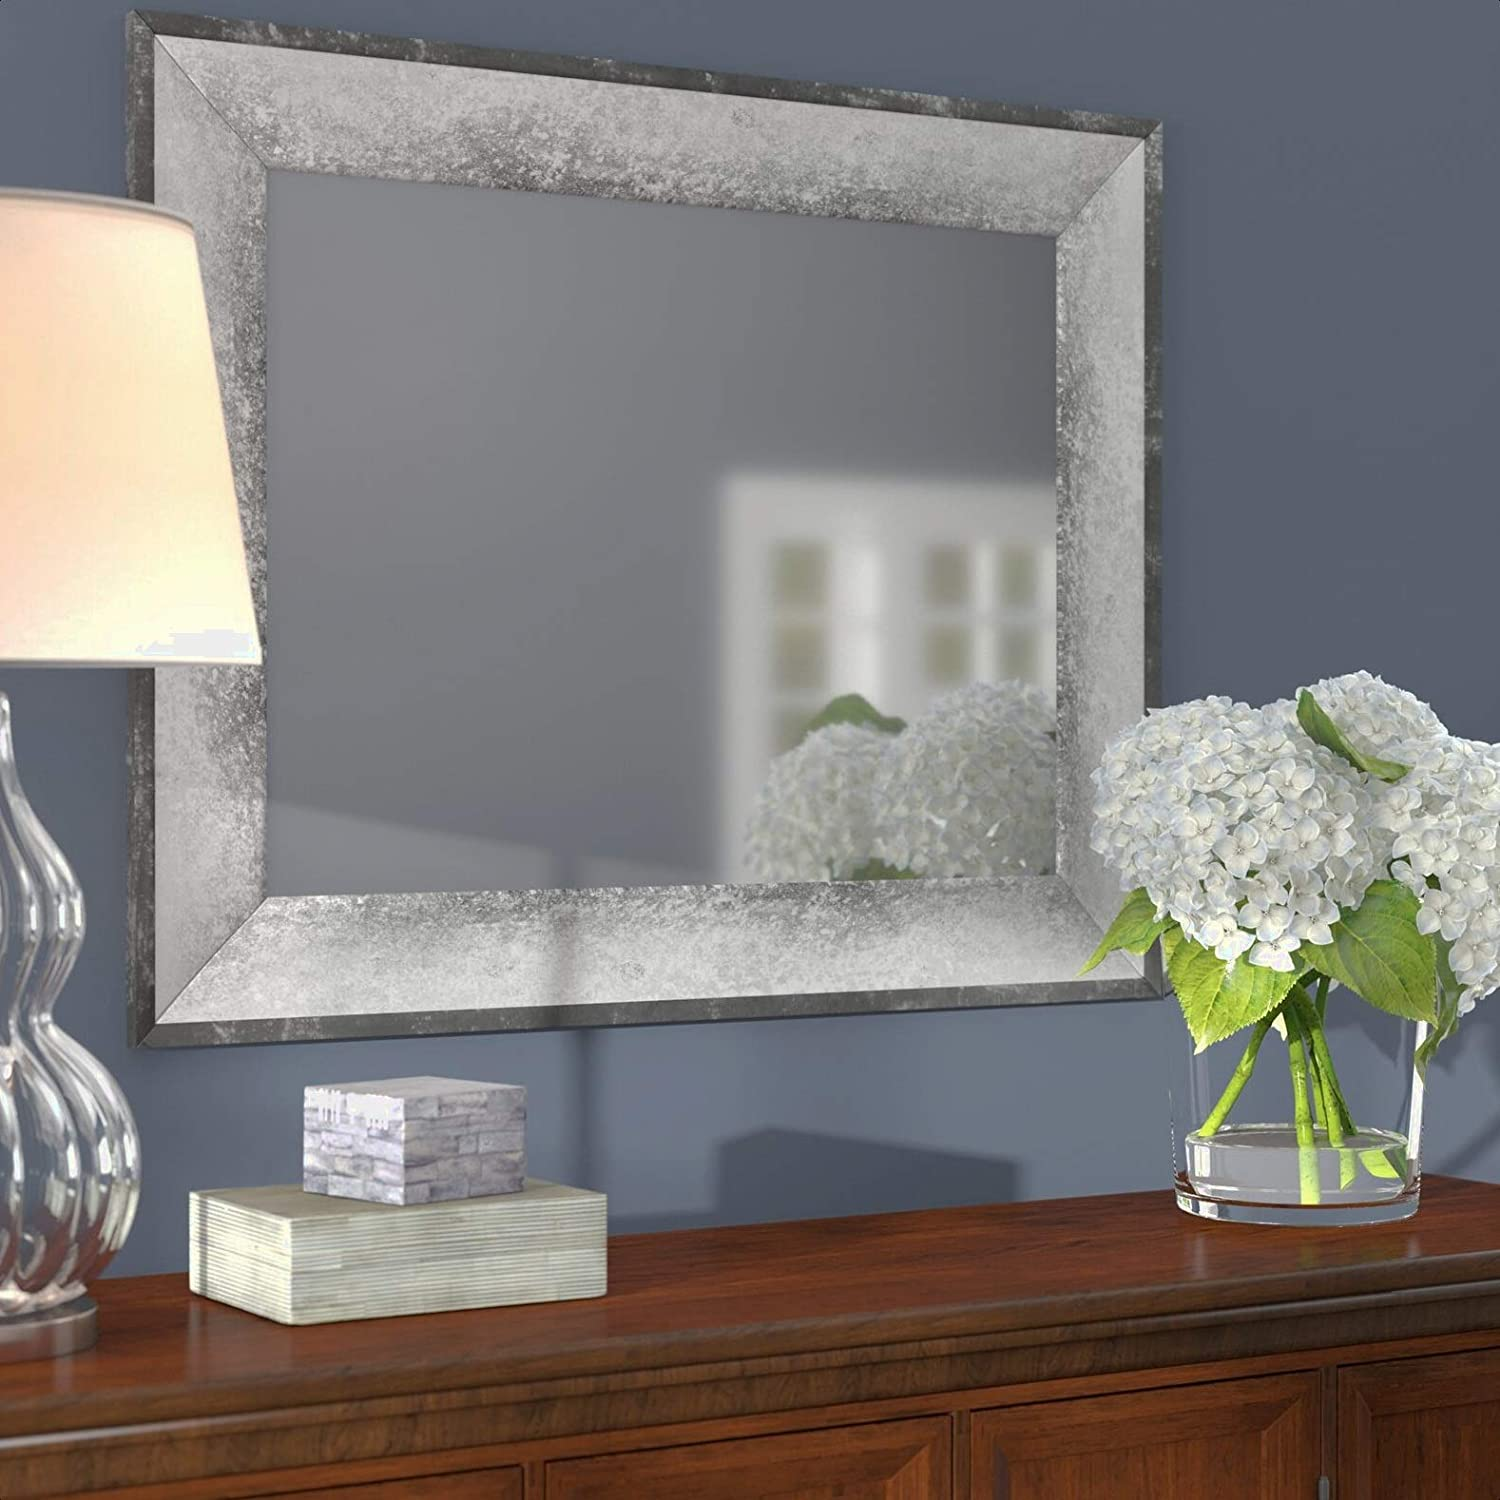 Modern Contemporary Bathroom Bombing free shipping Mirror Yes Max 86% OFF Framed: